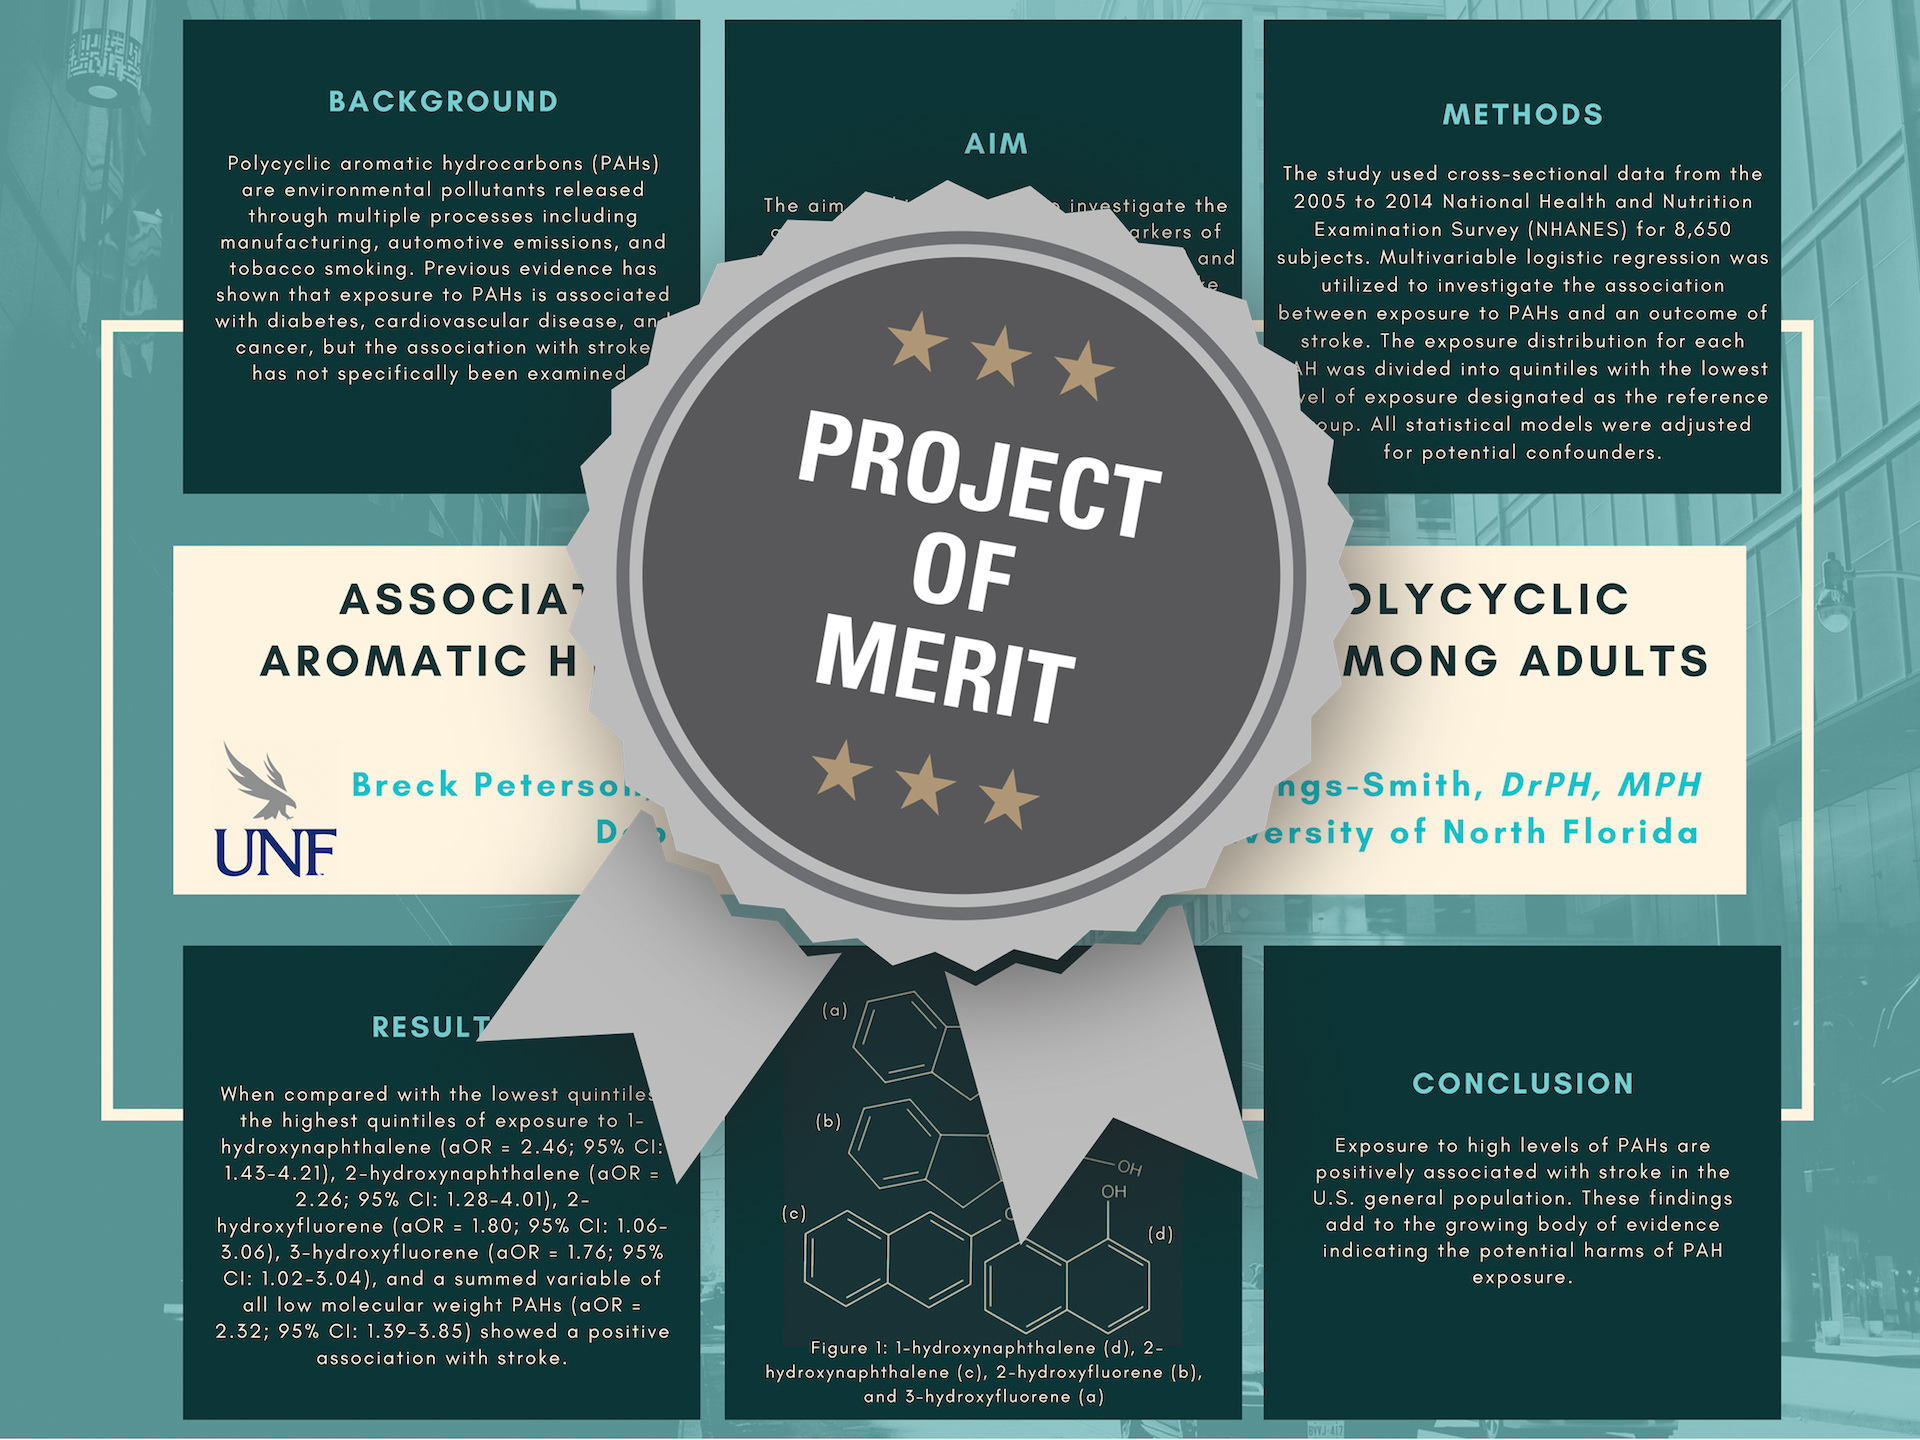 Association between exposure to polycyclic aromatic hydrocarbons and stroke among adults in the United States Project of Merit posters